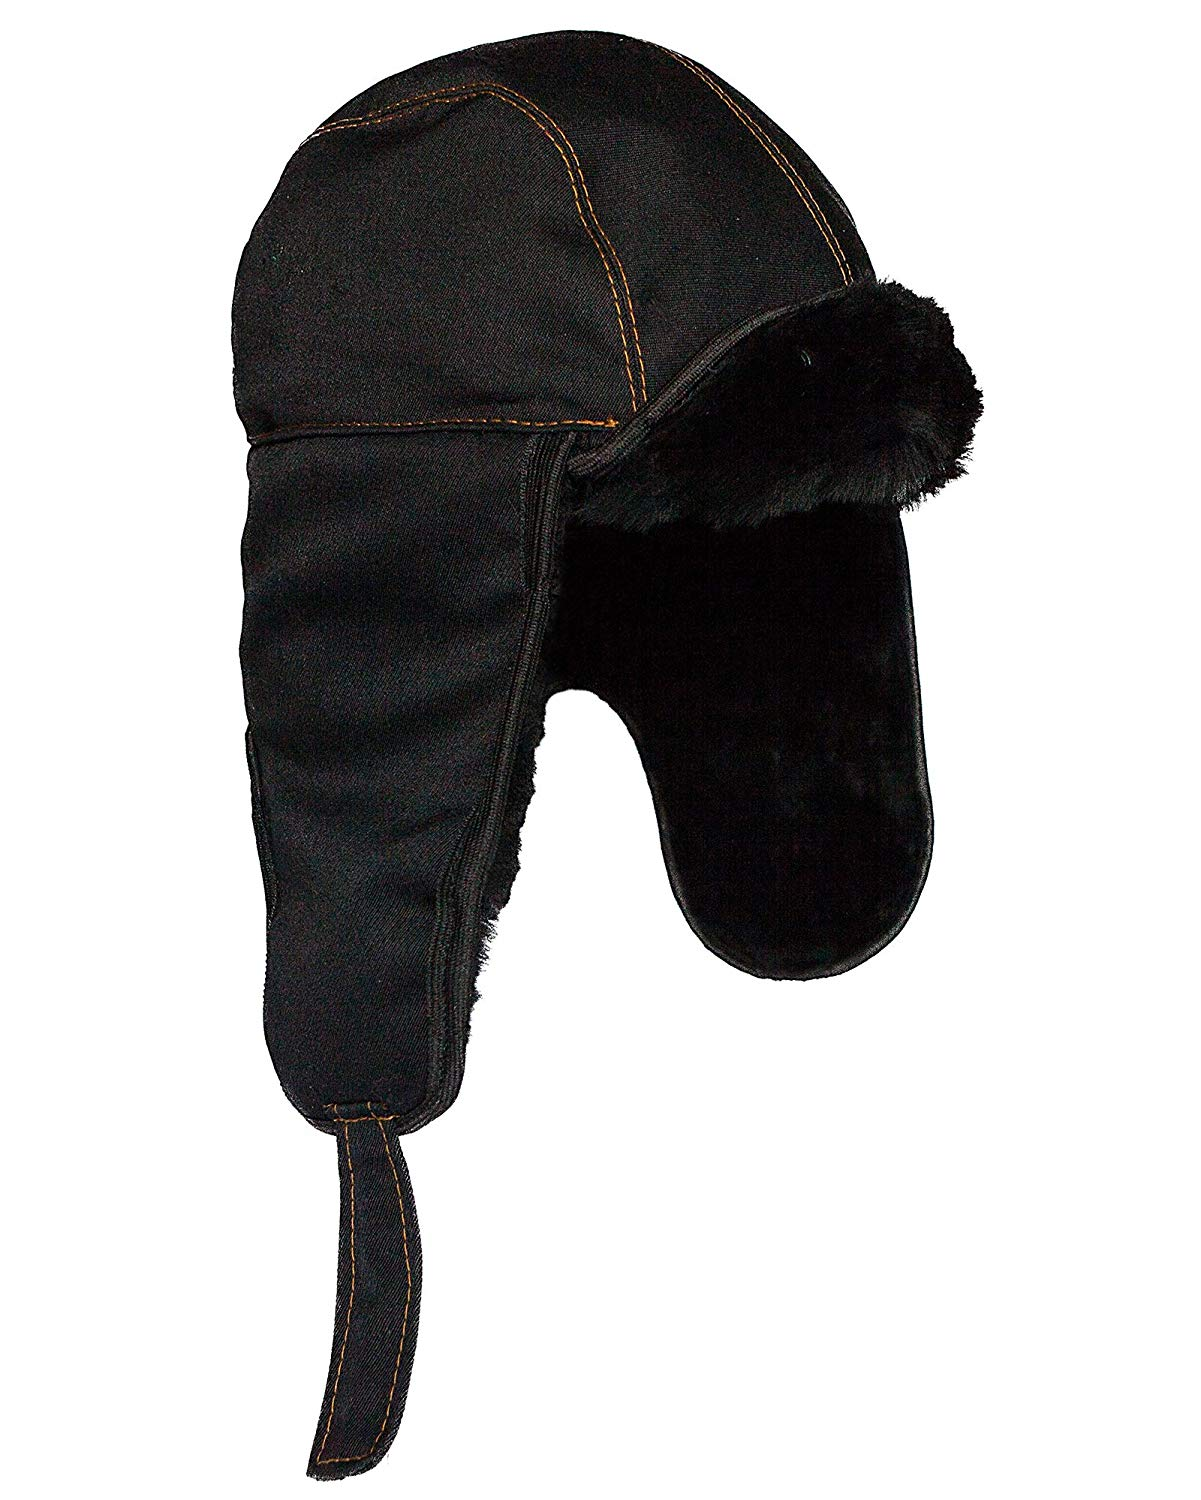 a3a0bbbff13 Get Quotations · Shearling Sheepskin Russian Aviator Bomber Hat. Black